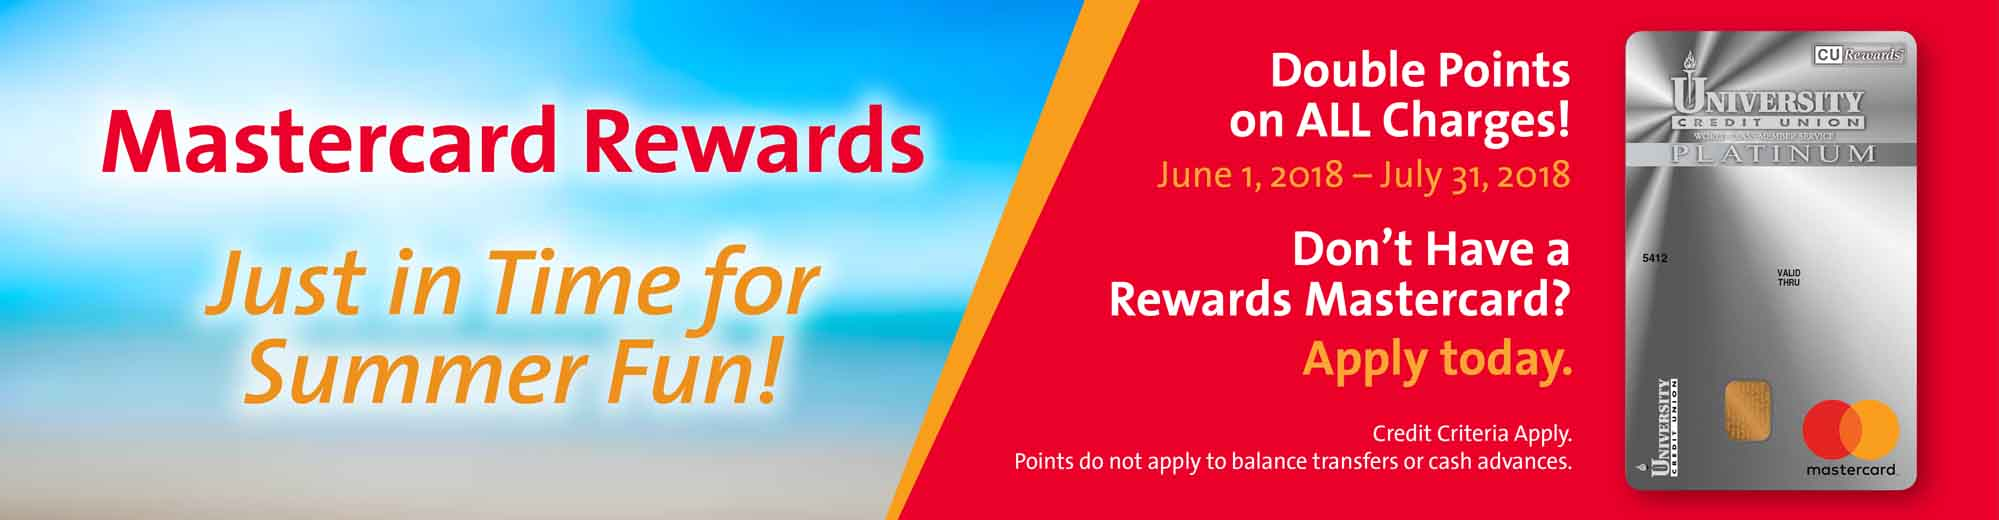 New University Credit Union Rewards MasterCard